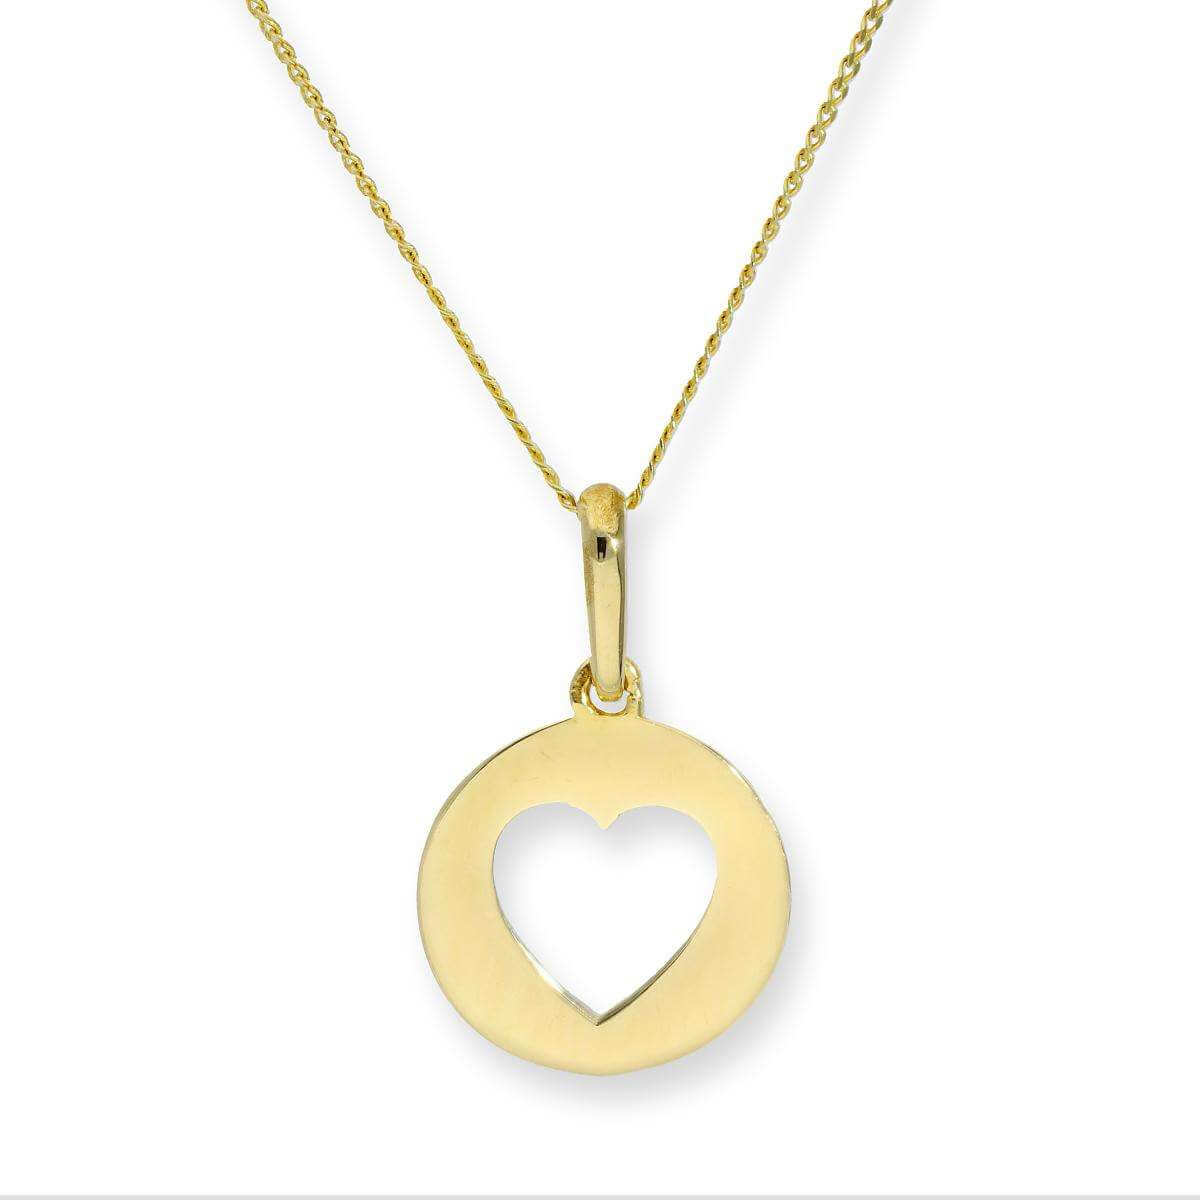 9ct Gold Round Pendant w Cut Out Heart on Chain